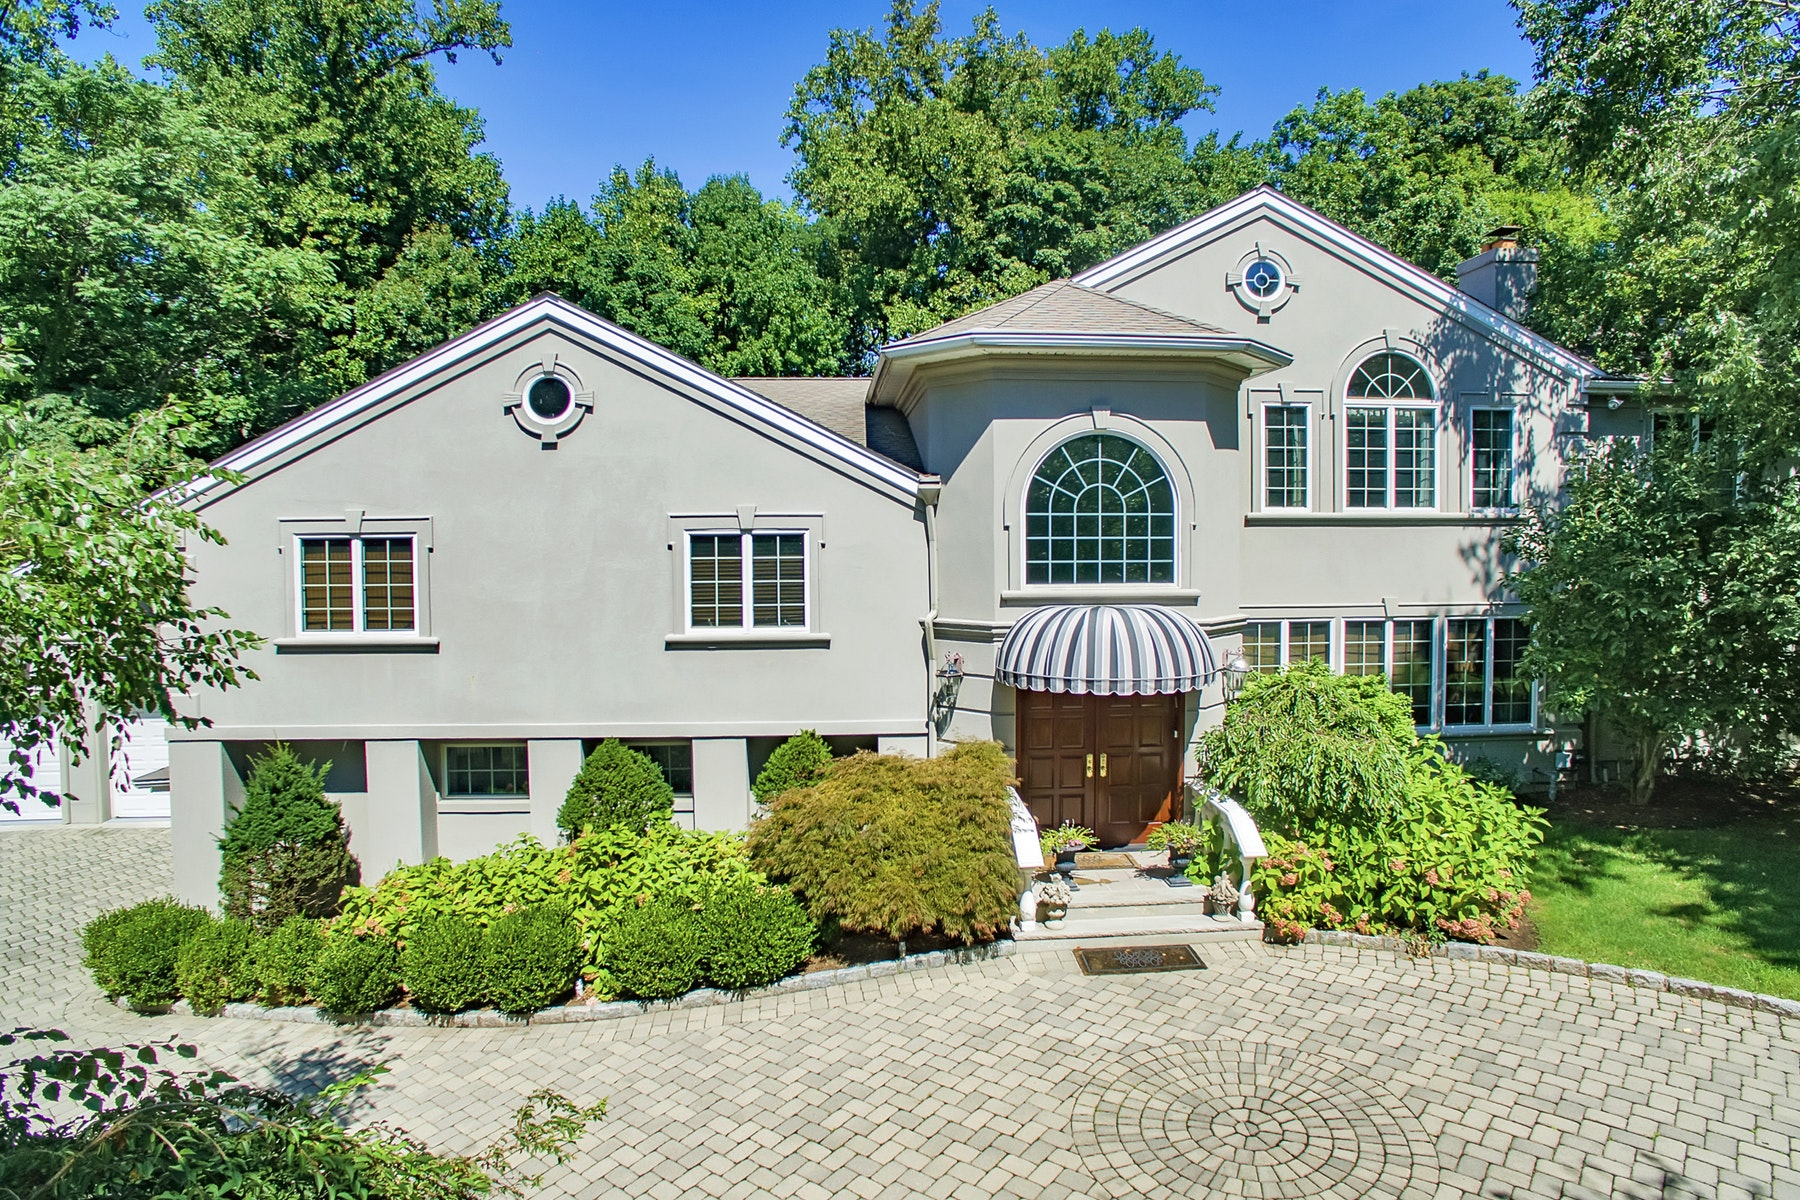 Single Family Home for Sale at ONE OF A KIND EXQUISITE DECORATOR'S OWN EAST HILL HOME 23 Suffolk Lane, Tenafly, New Jersey 07670 United States